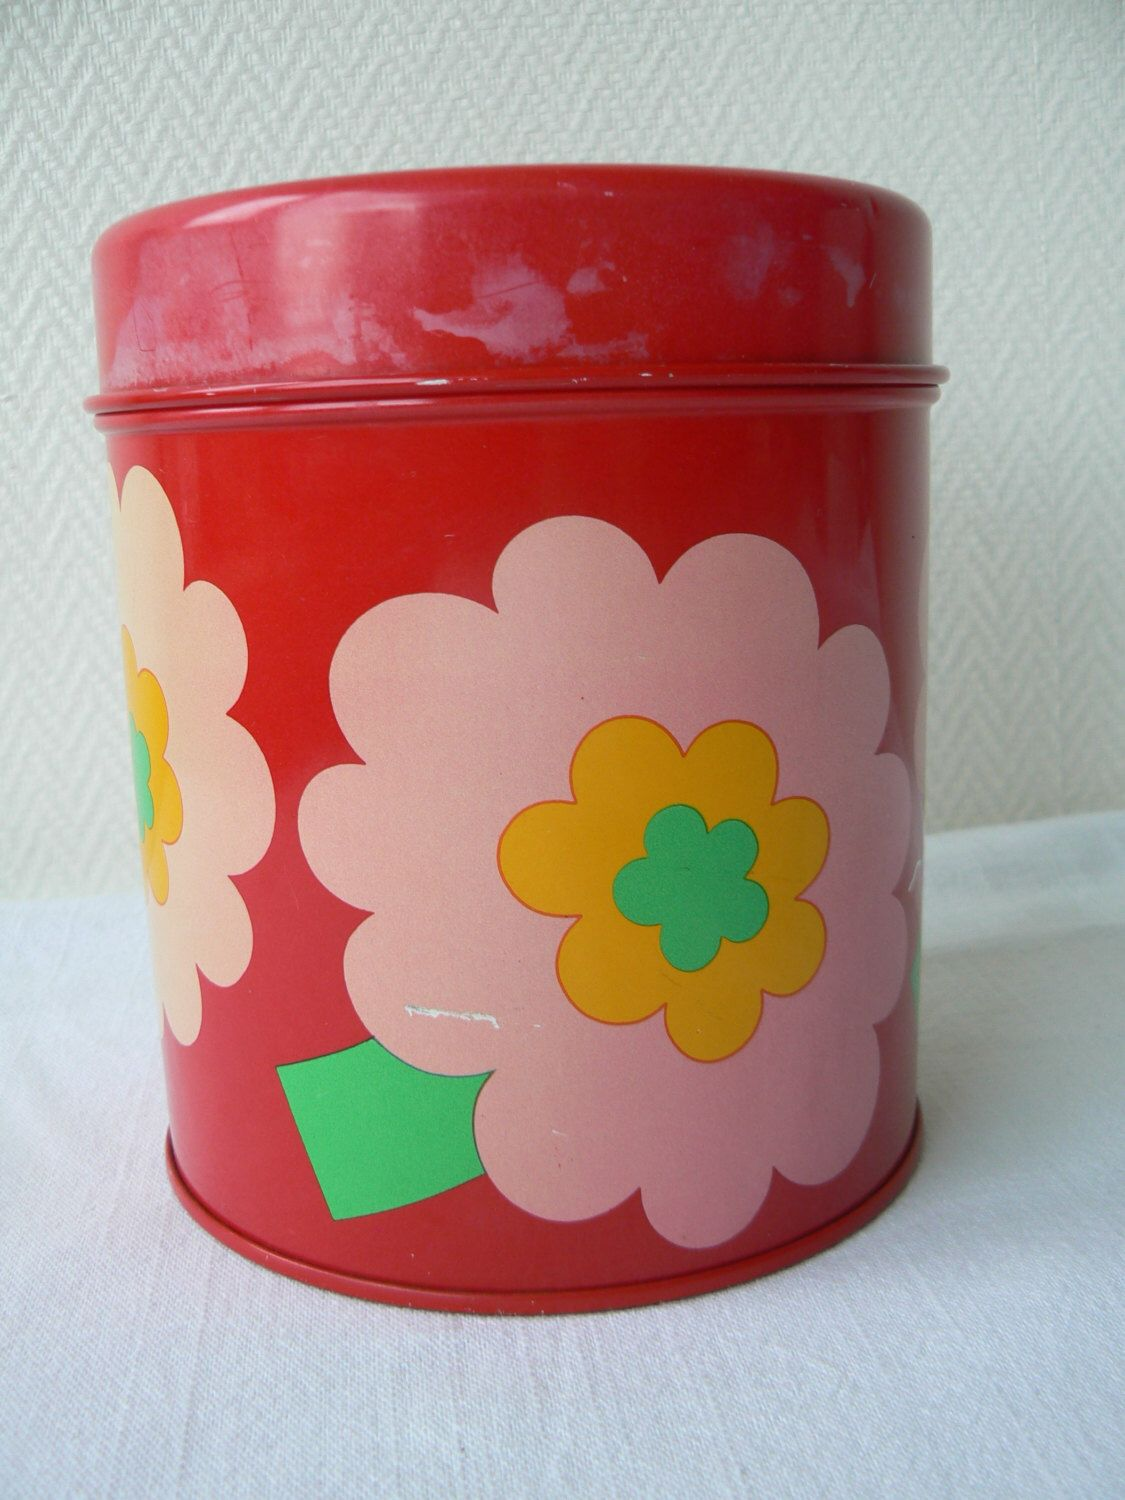 Laurids Lonborg Lena Al Eklund Metal Storage Canister Box Denmark Danish Design Red Flowers Kawai